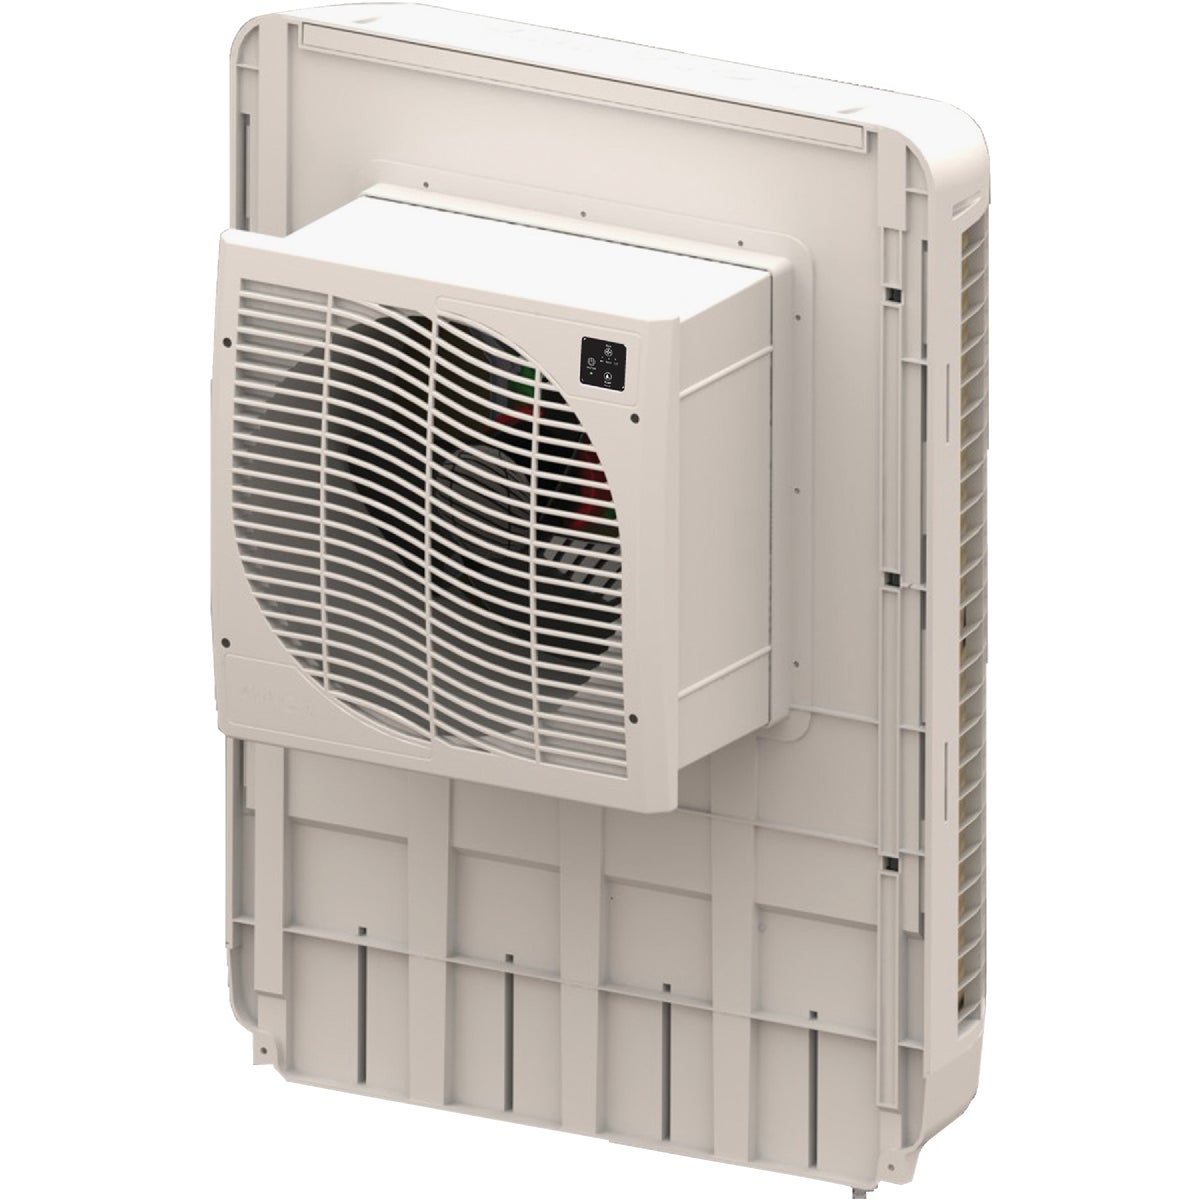 3500CFM WINDOW COOLER - MCP44 by Champion Cooler Corp